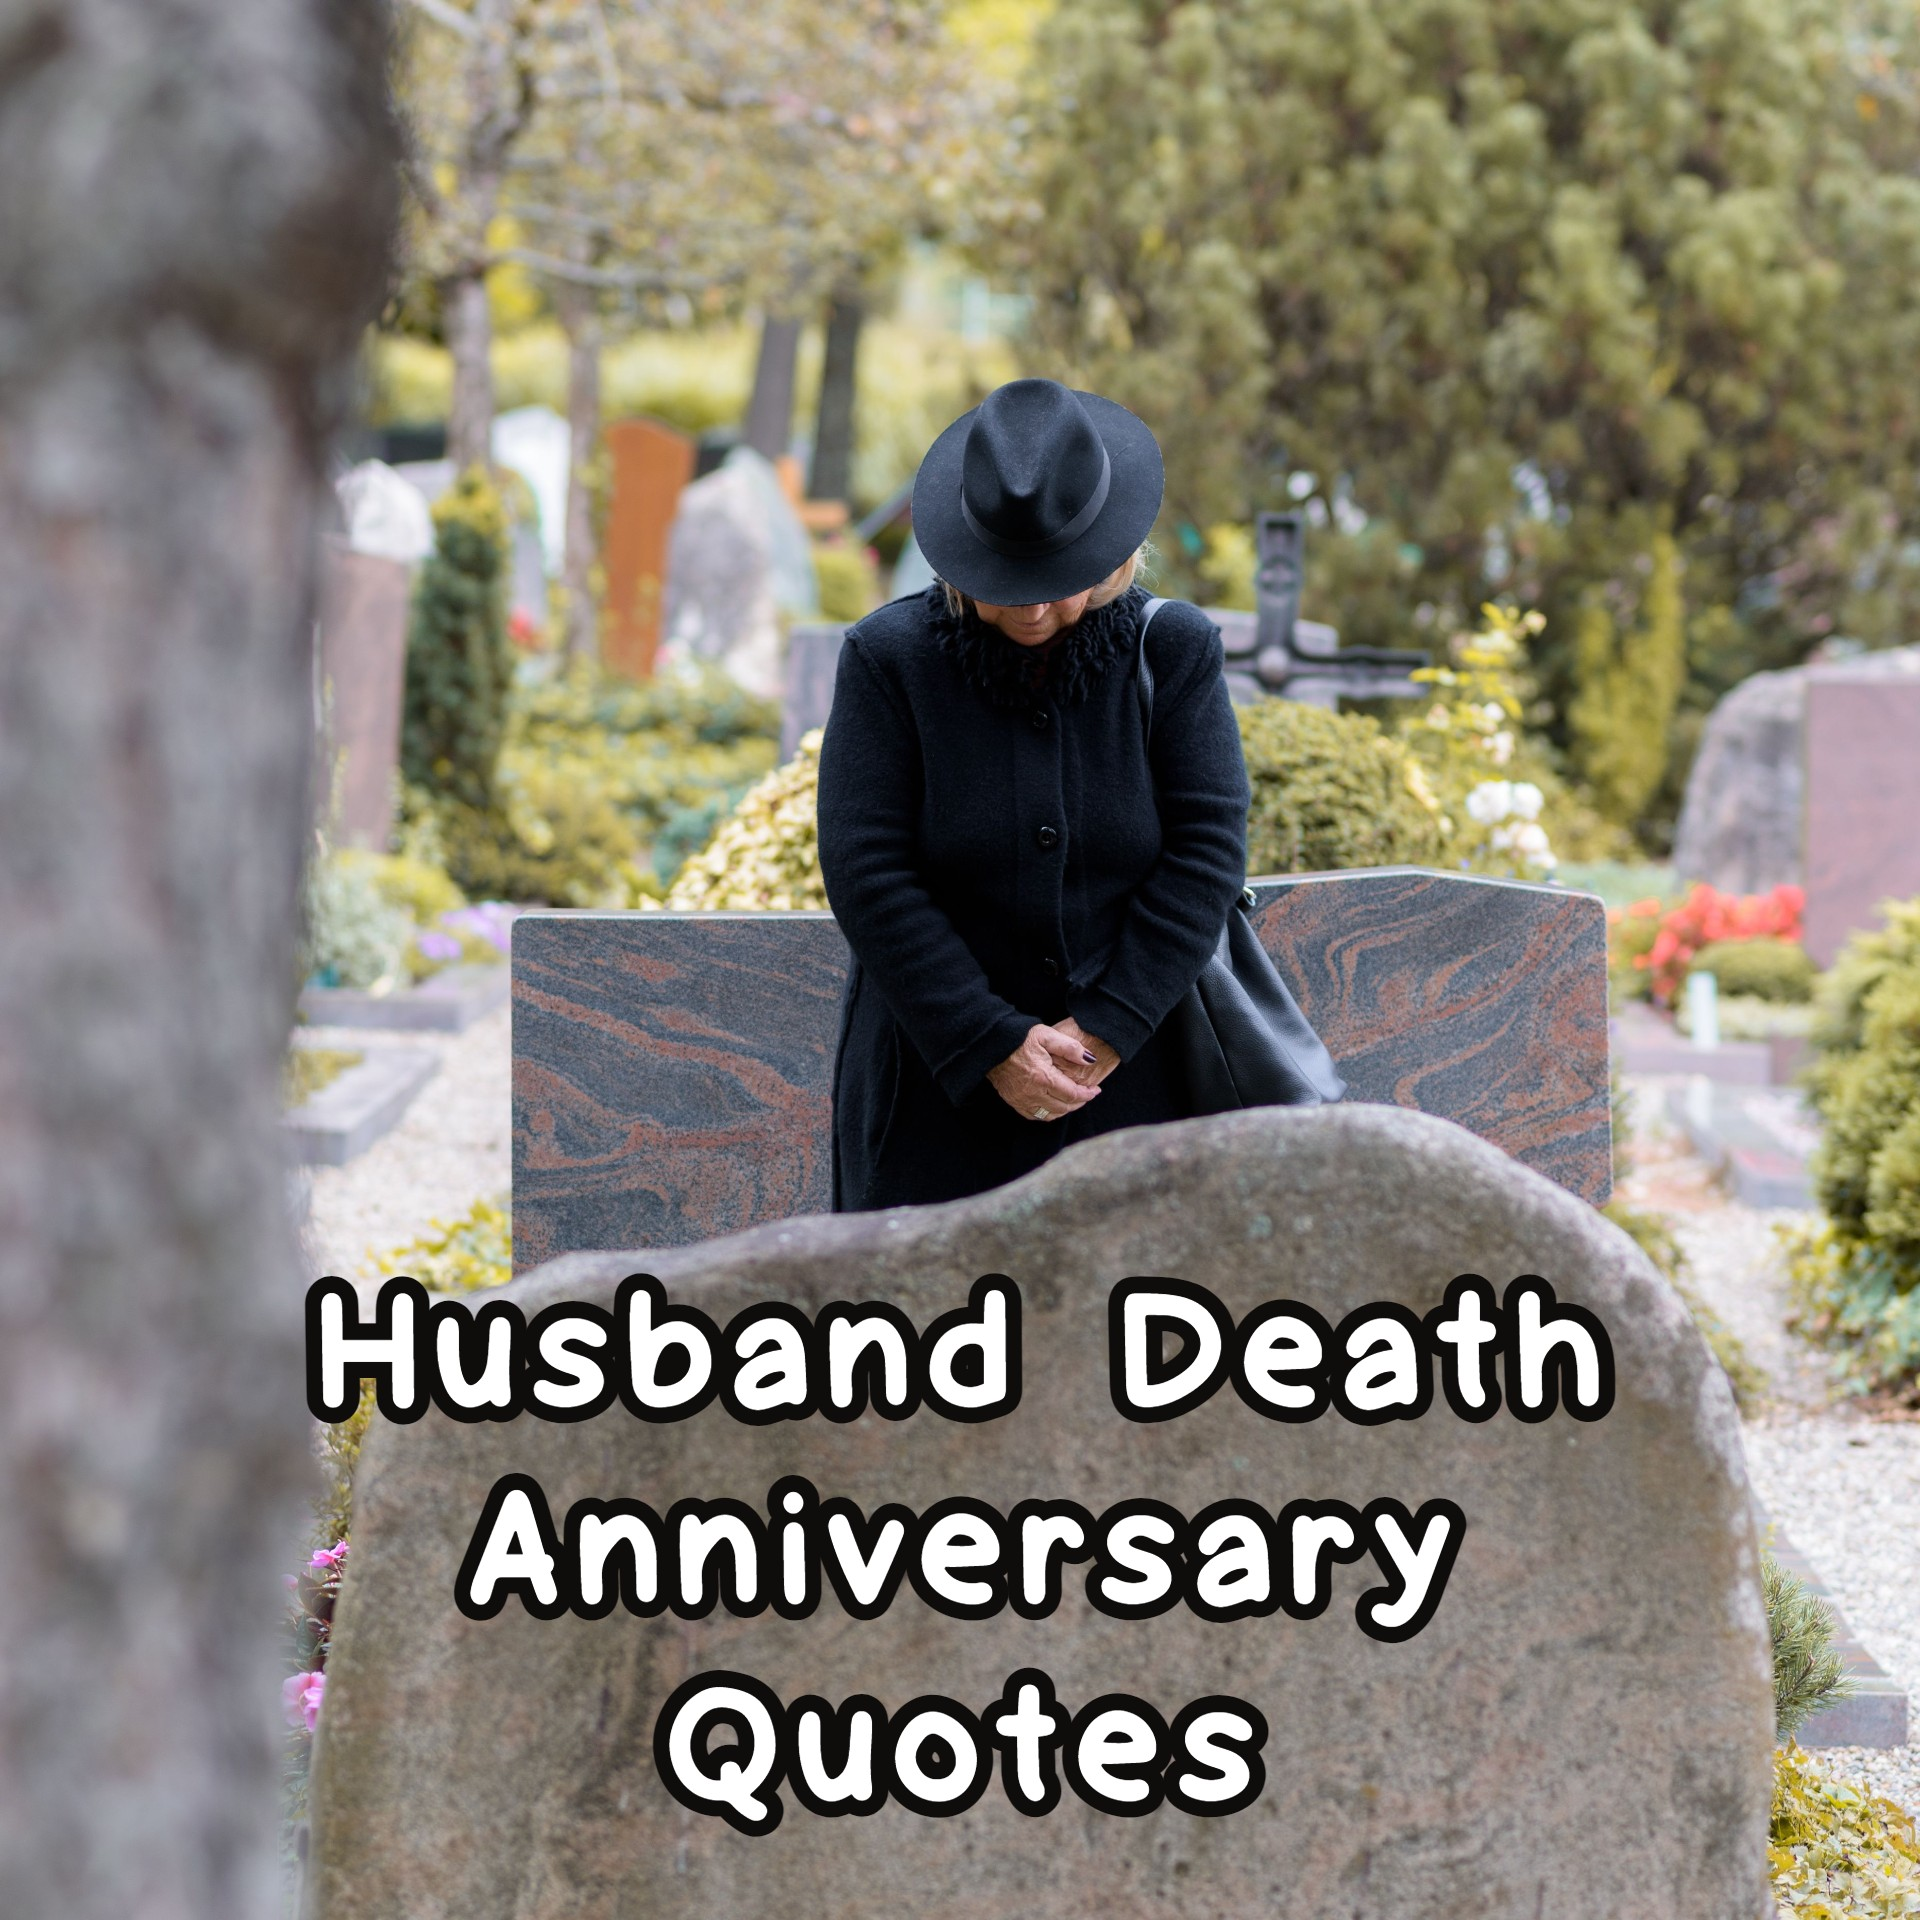 Husband Death Anniversary Quotes